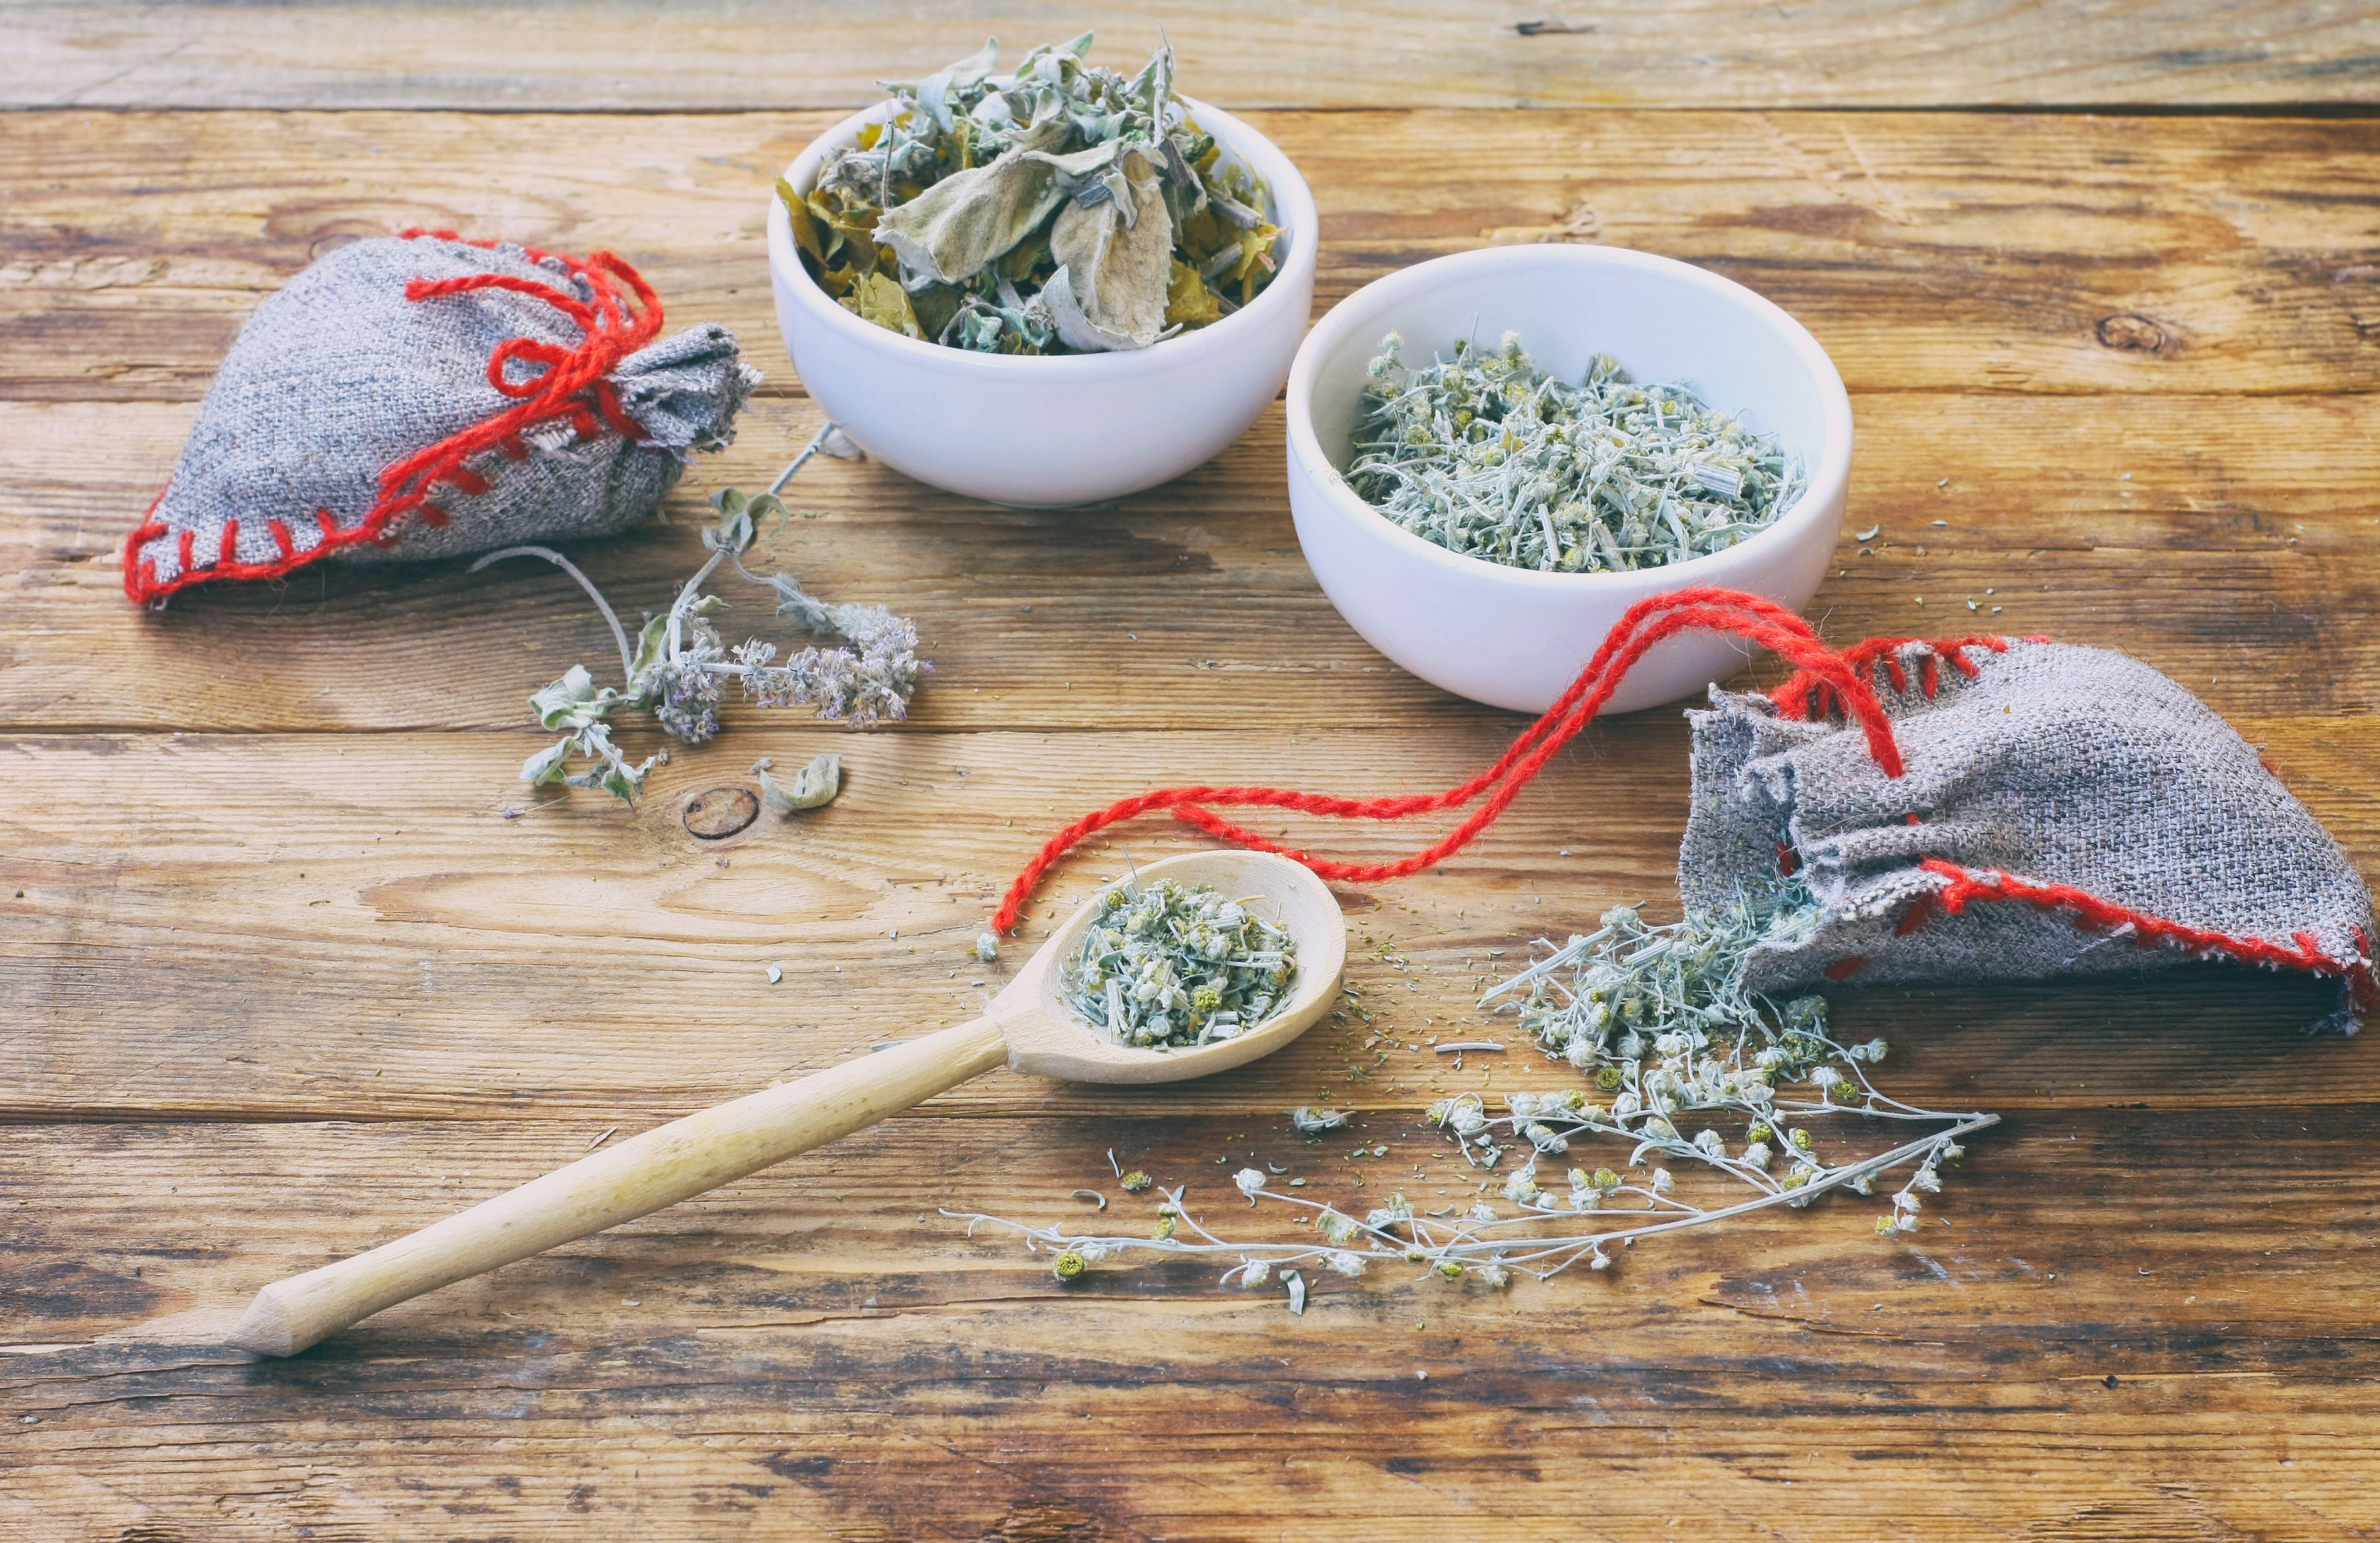 homemade sachets with dry herbs